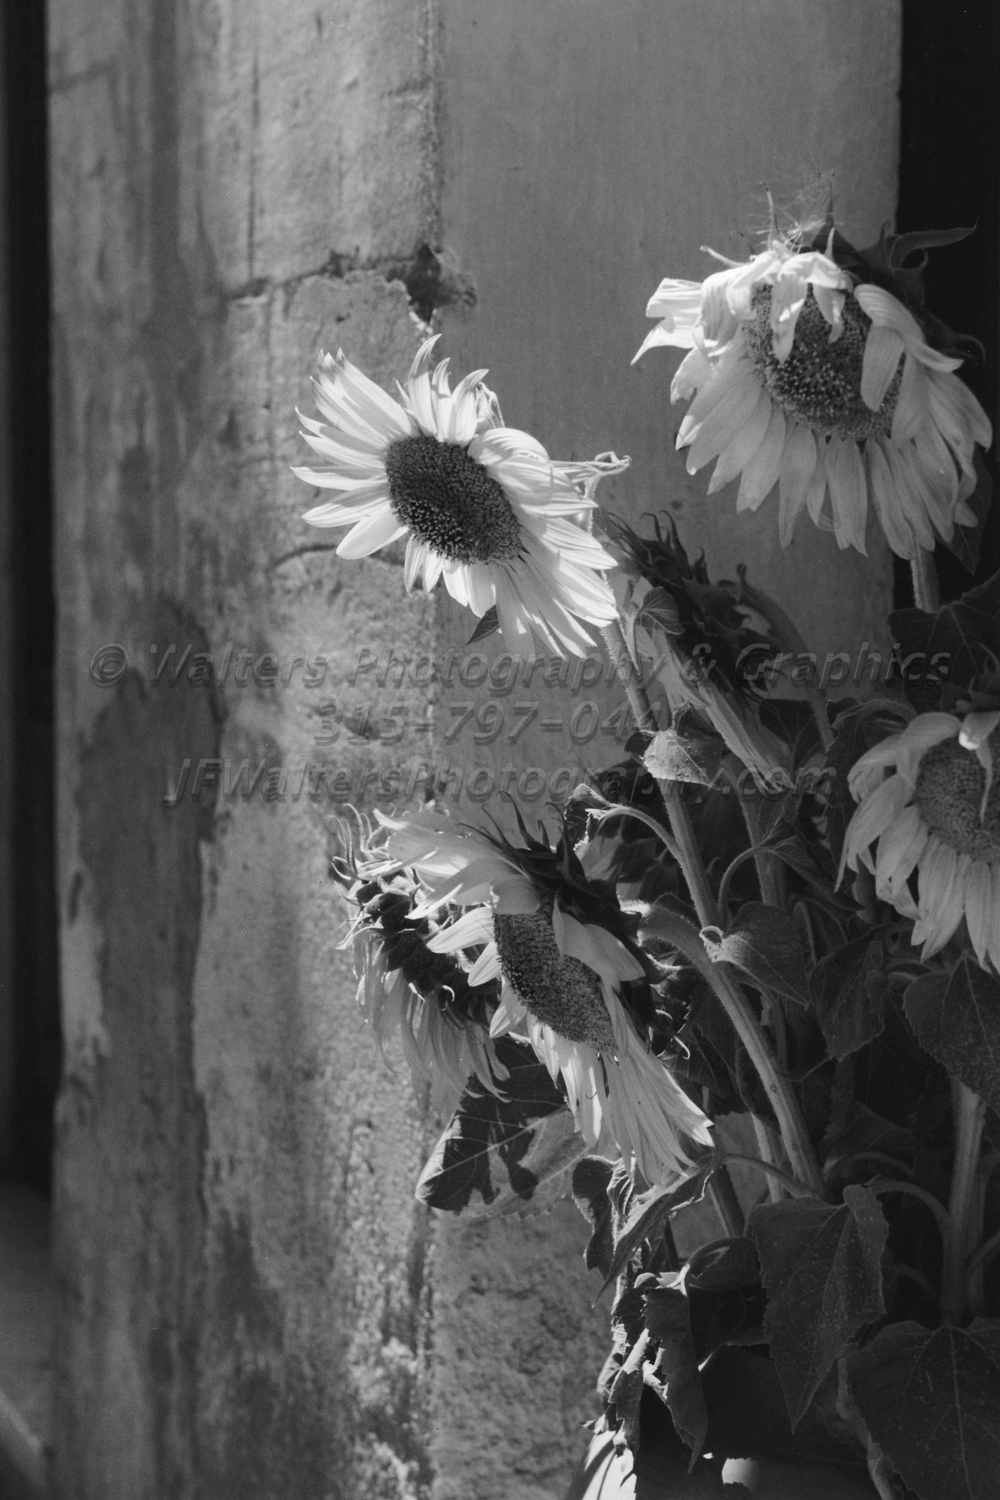 Sunflowers_8163_24A.jpg